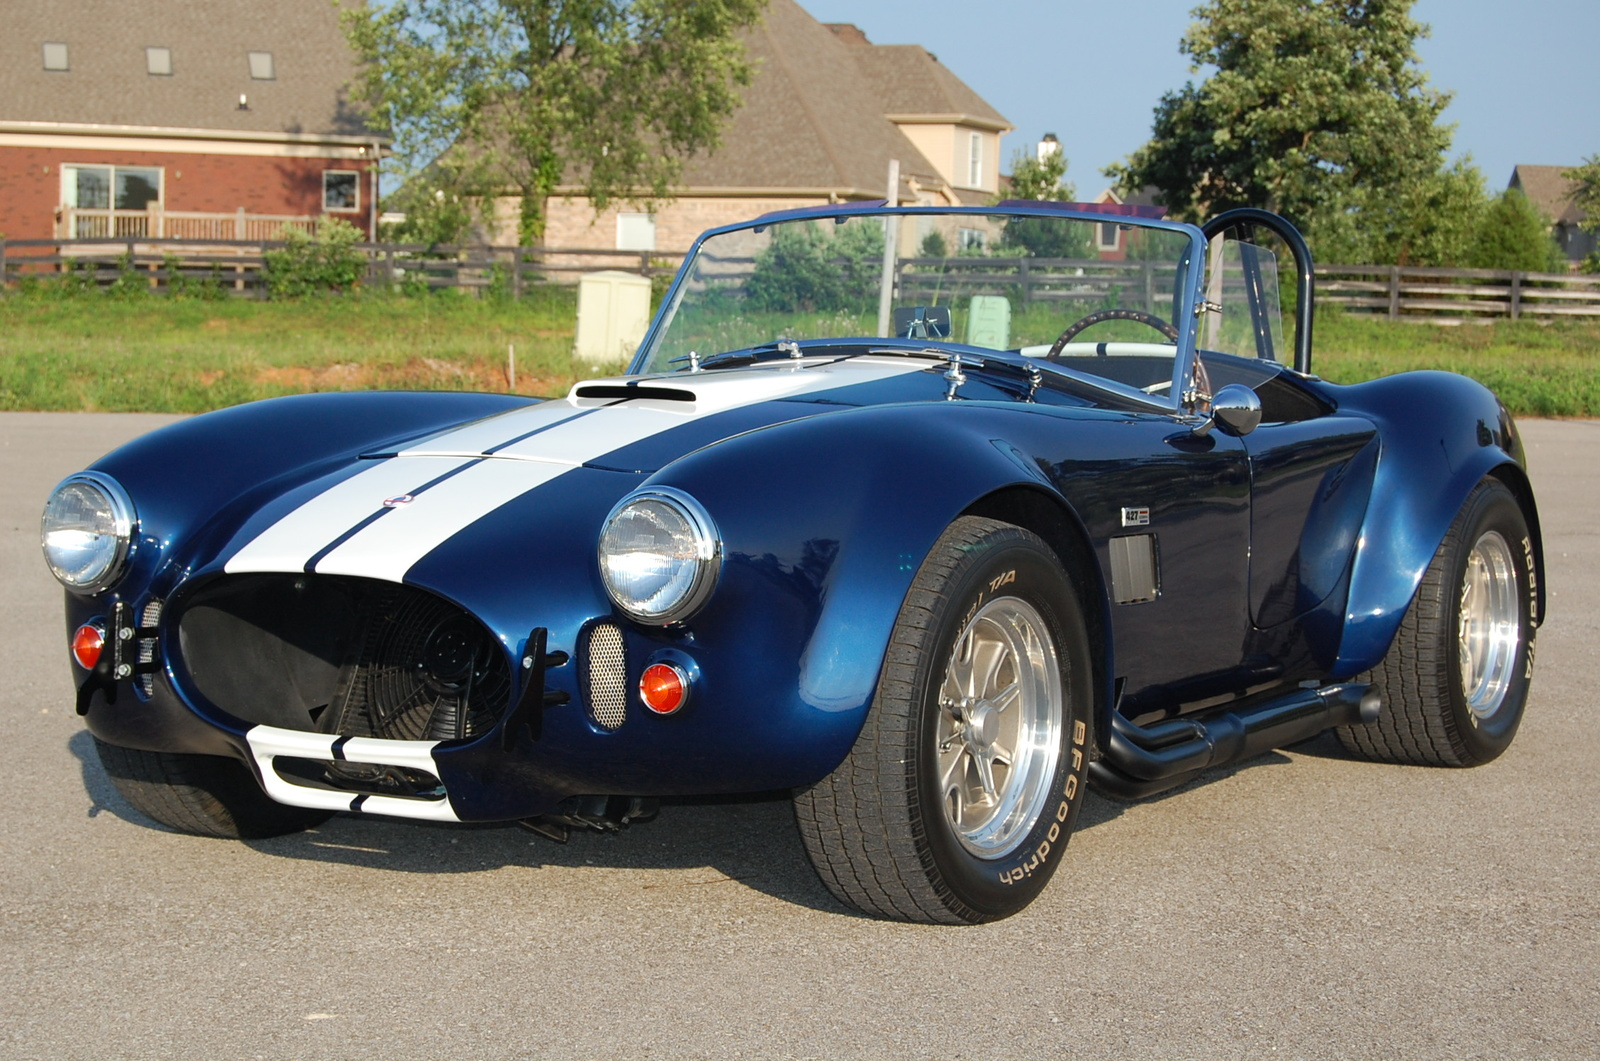 Our list of sexy cars includes the 1967 shelby cobra